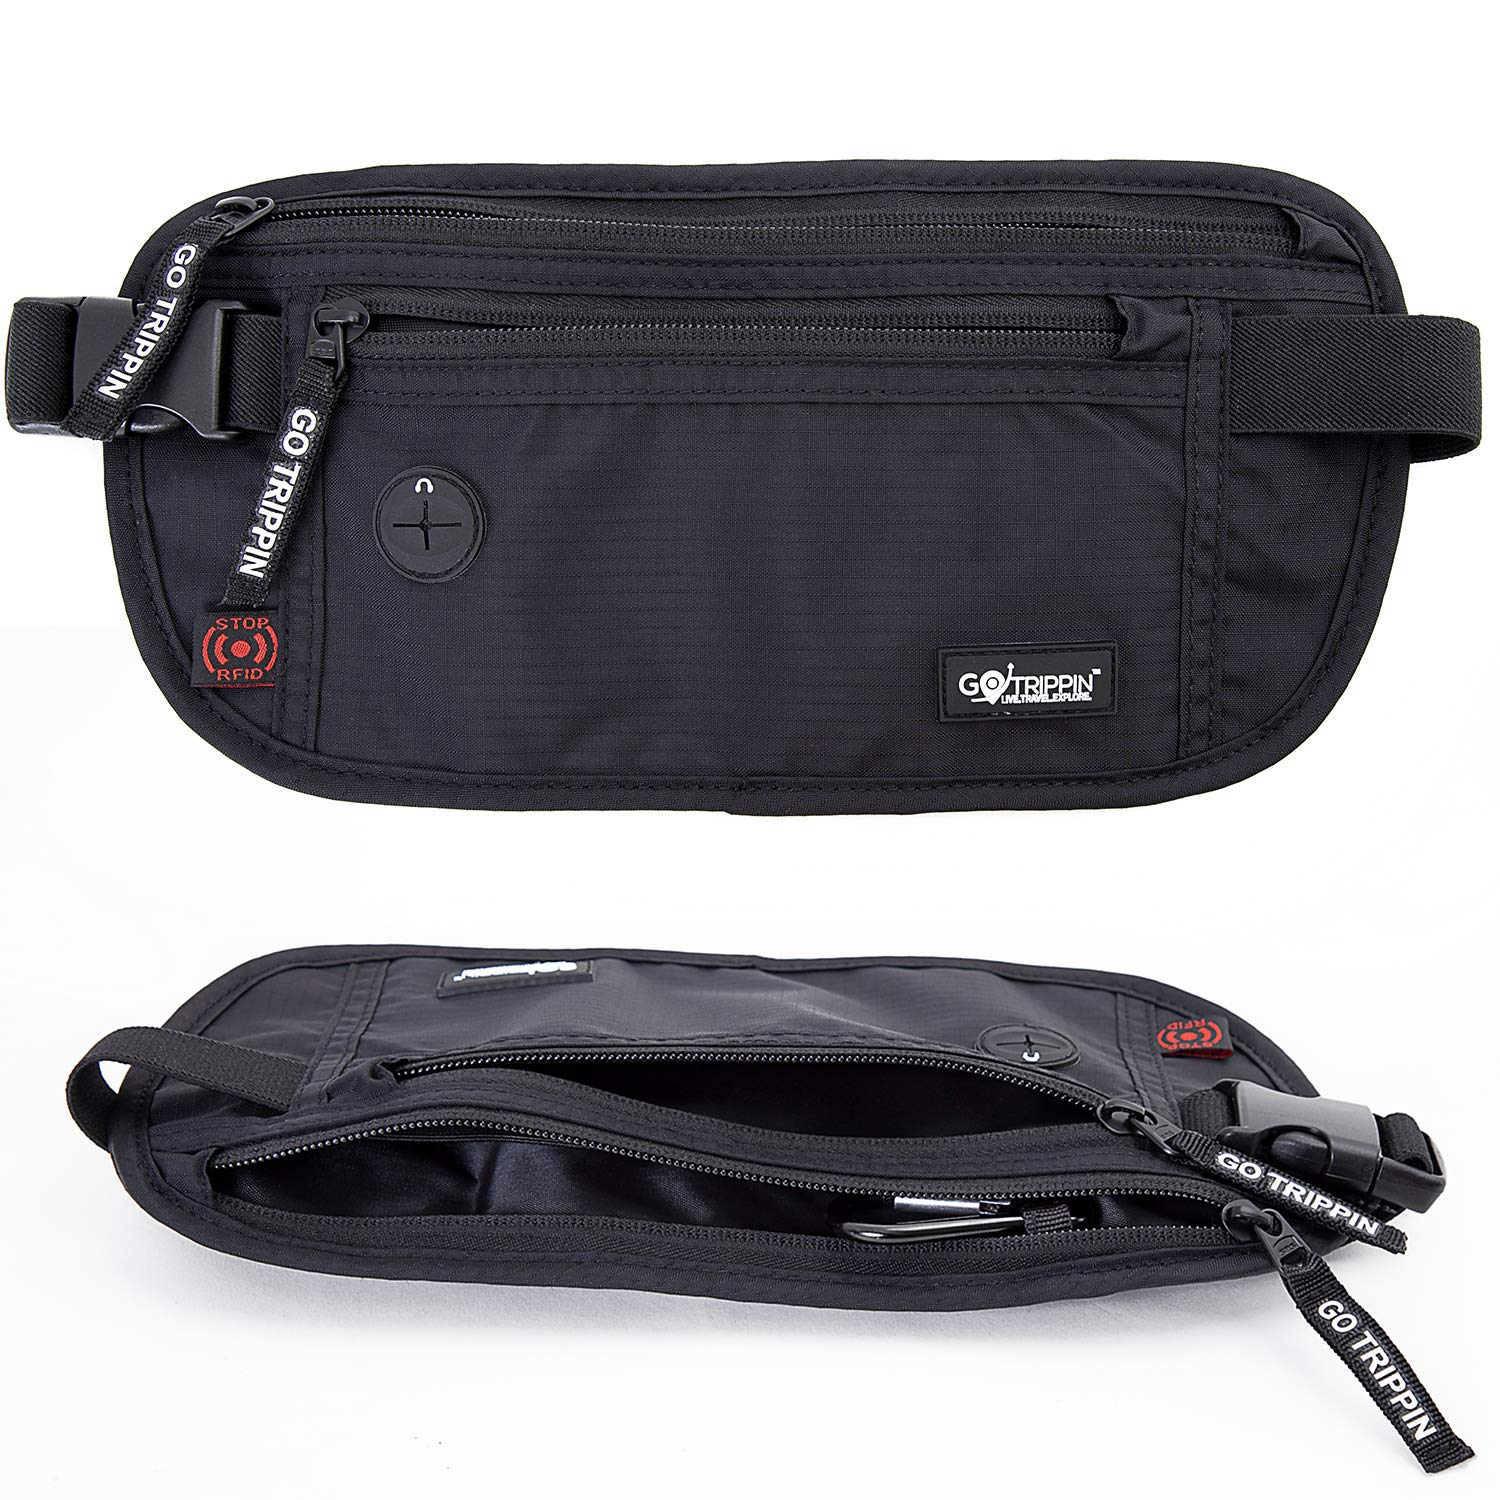 GoTrippin Travel Money Belt, Waist Pouch Bag with RFID Security (Black) product image